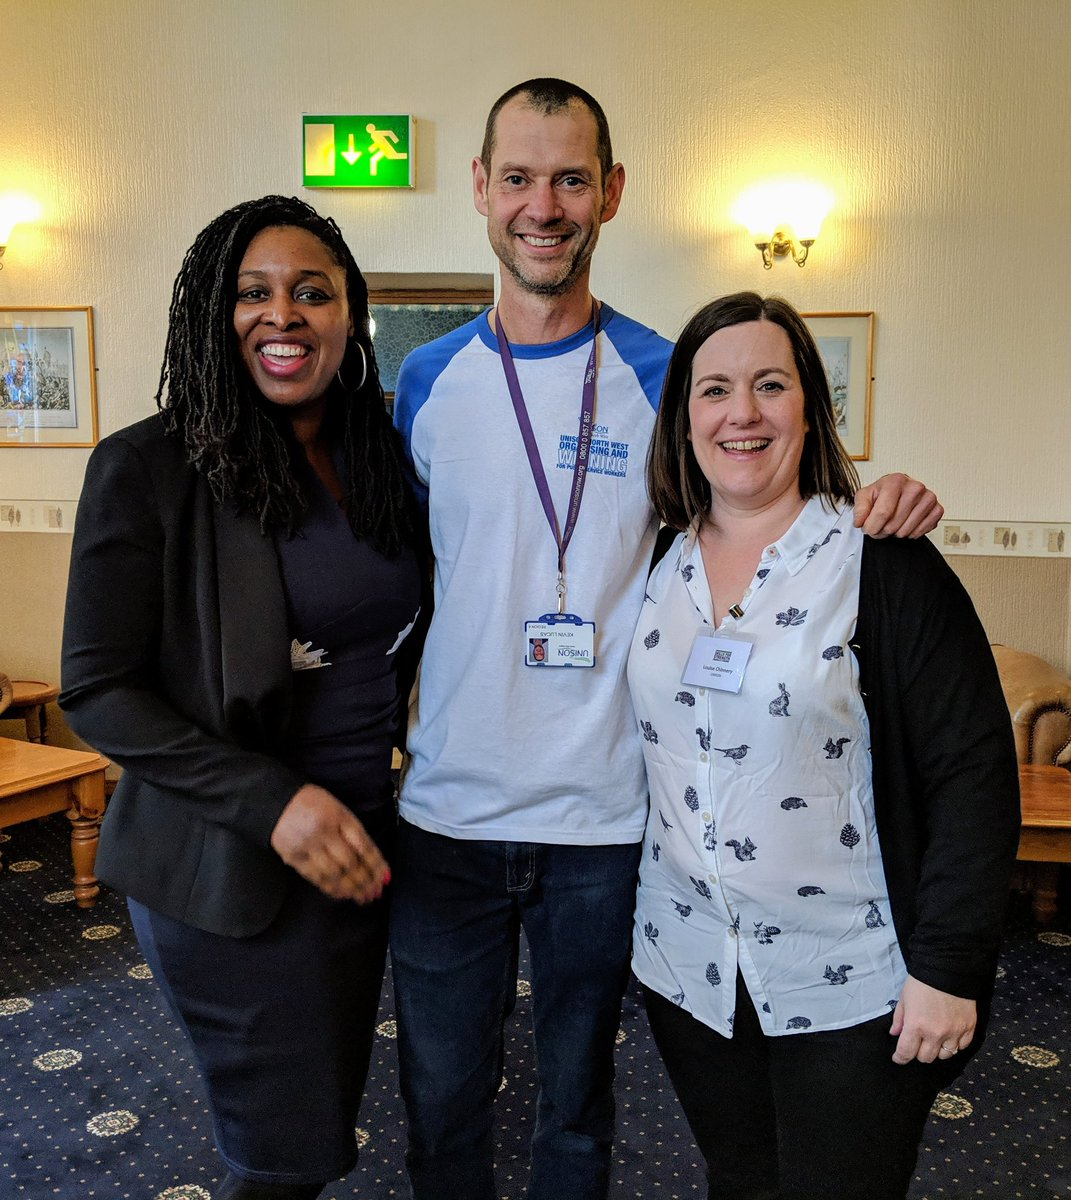 20 years ago @DawnButlerBrent & @LouiseChinnery were my tutors on the @The_TUC Organising Academy - so pleased to see them again - here at @NorthWestUNISON #skillsforstrength